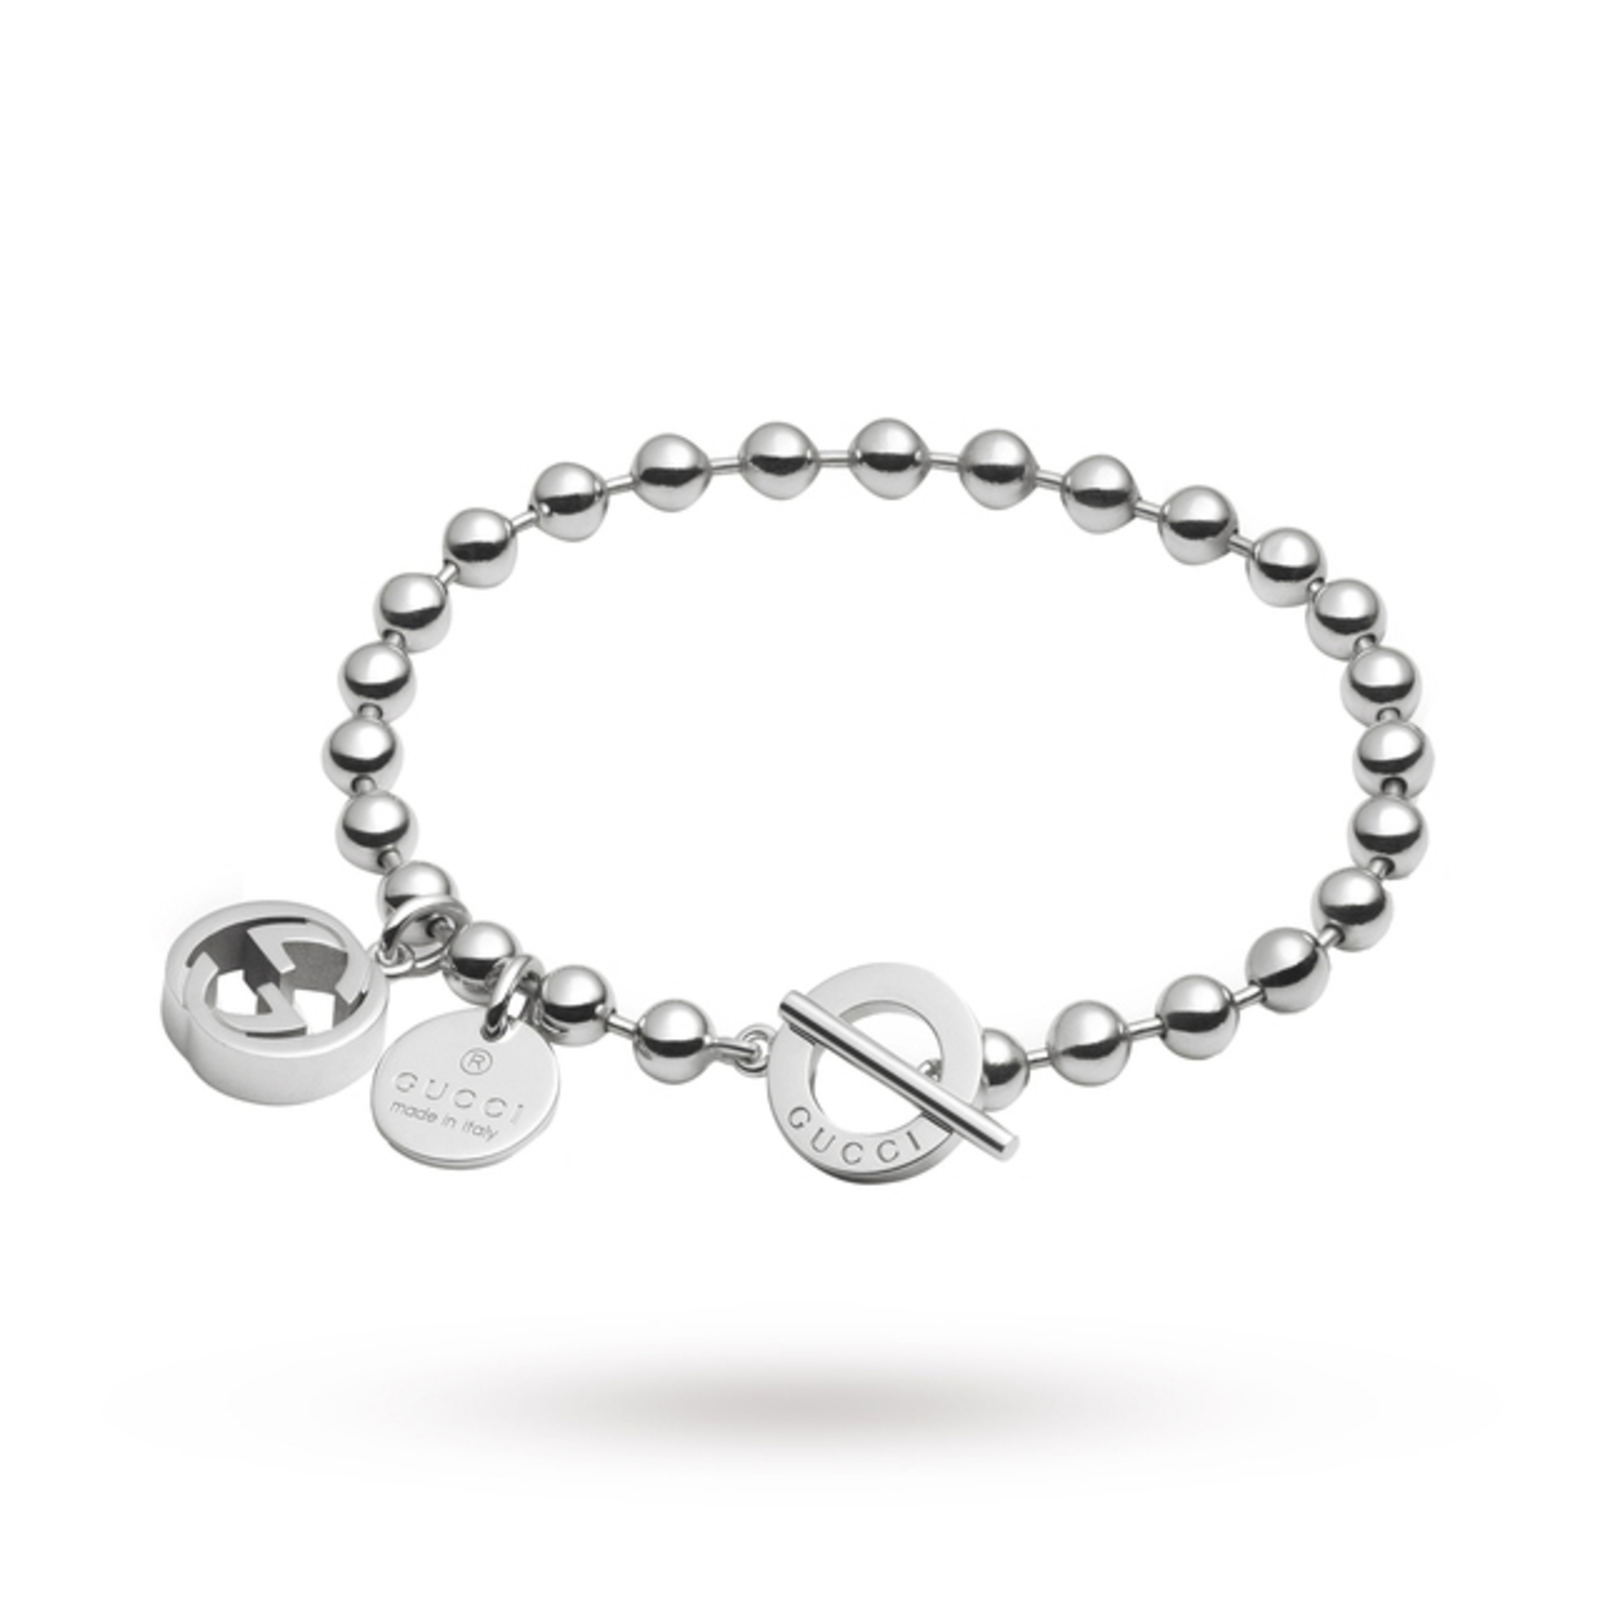 ball in hardwear constrain m long mm fmt co sterling id bracelet silver tiffany ed hei fit jewelry bead bracelets and wid